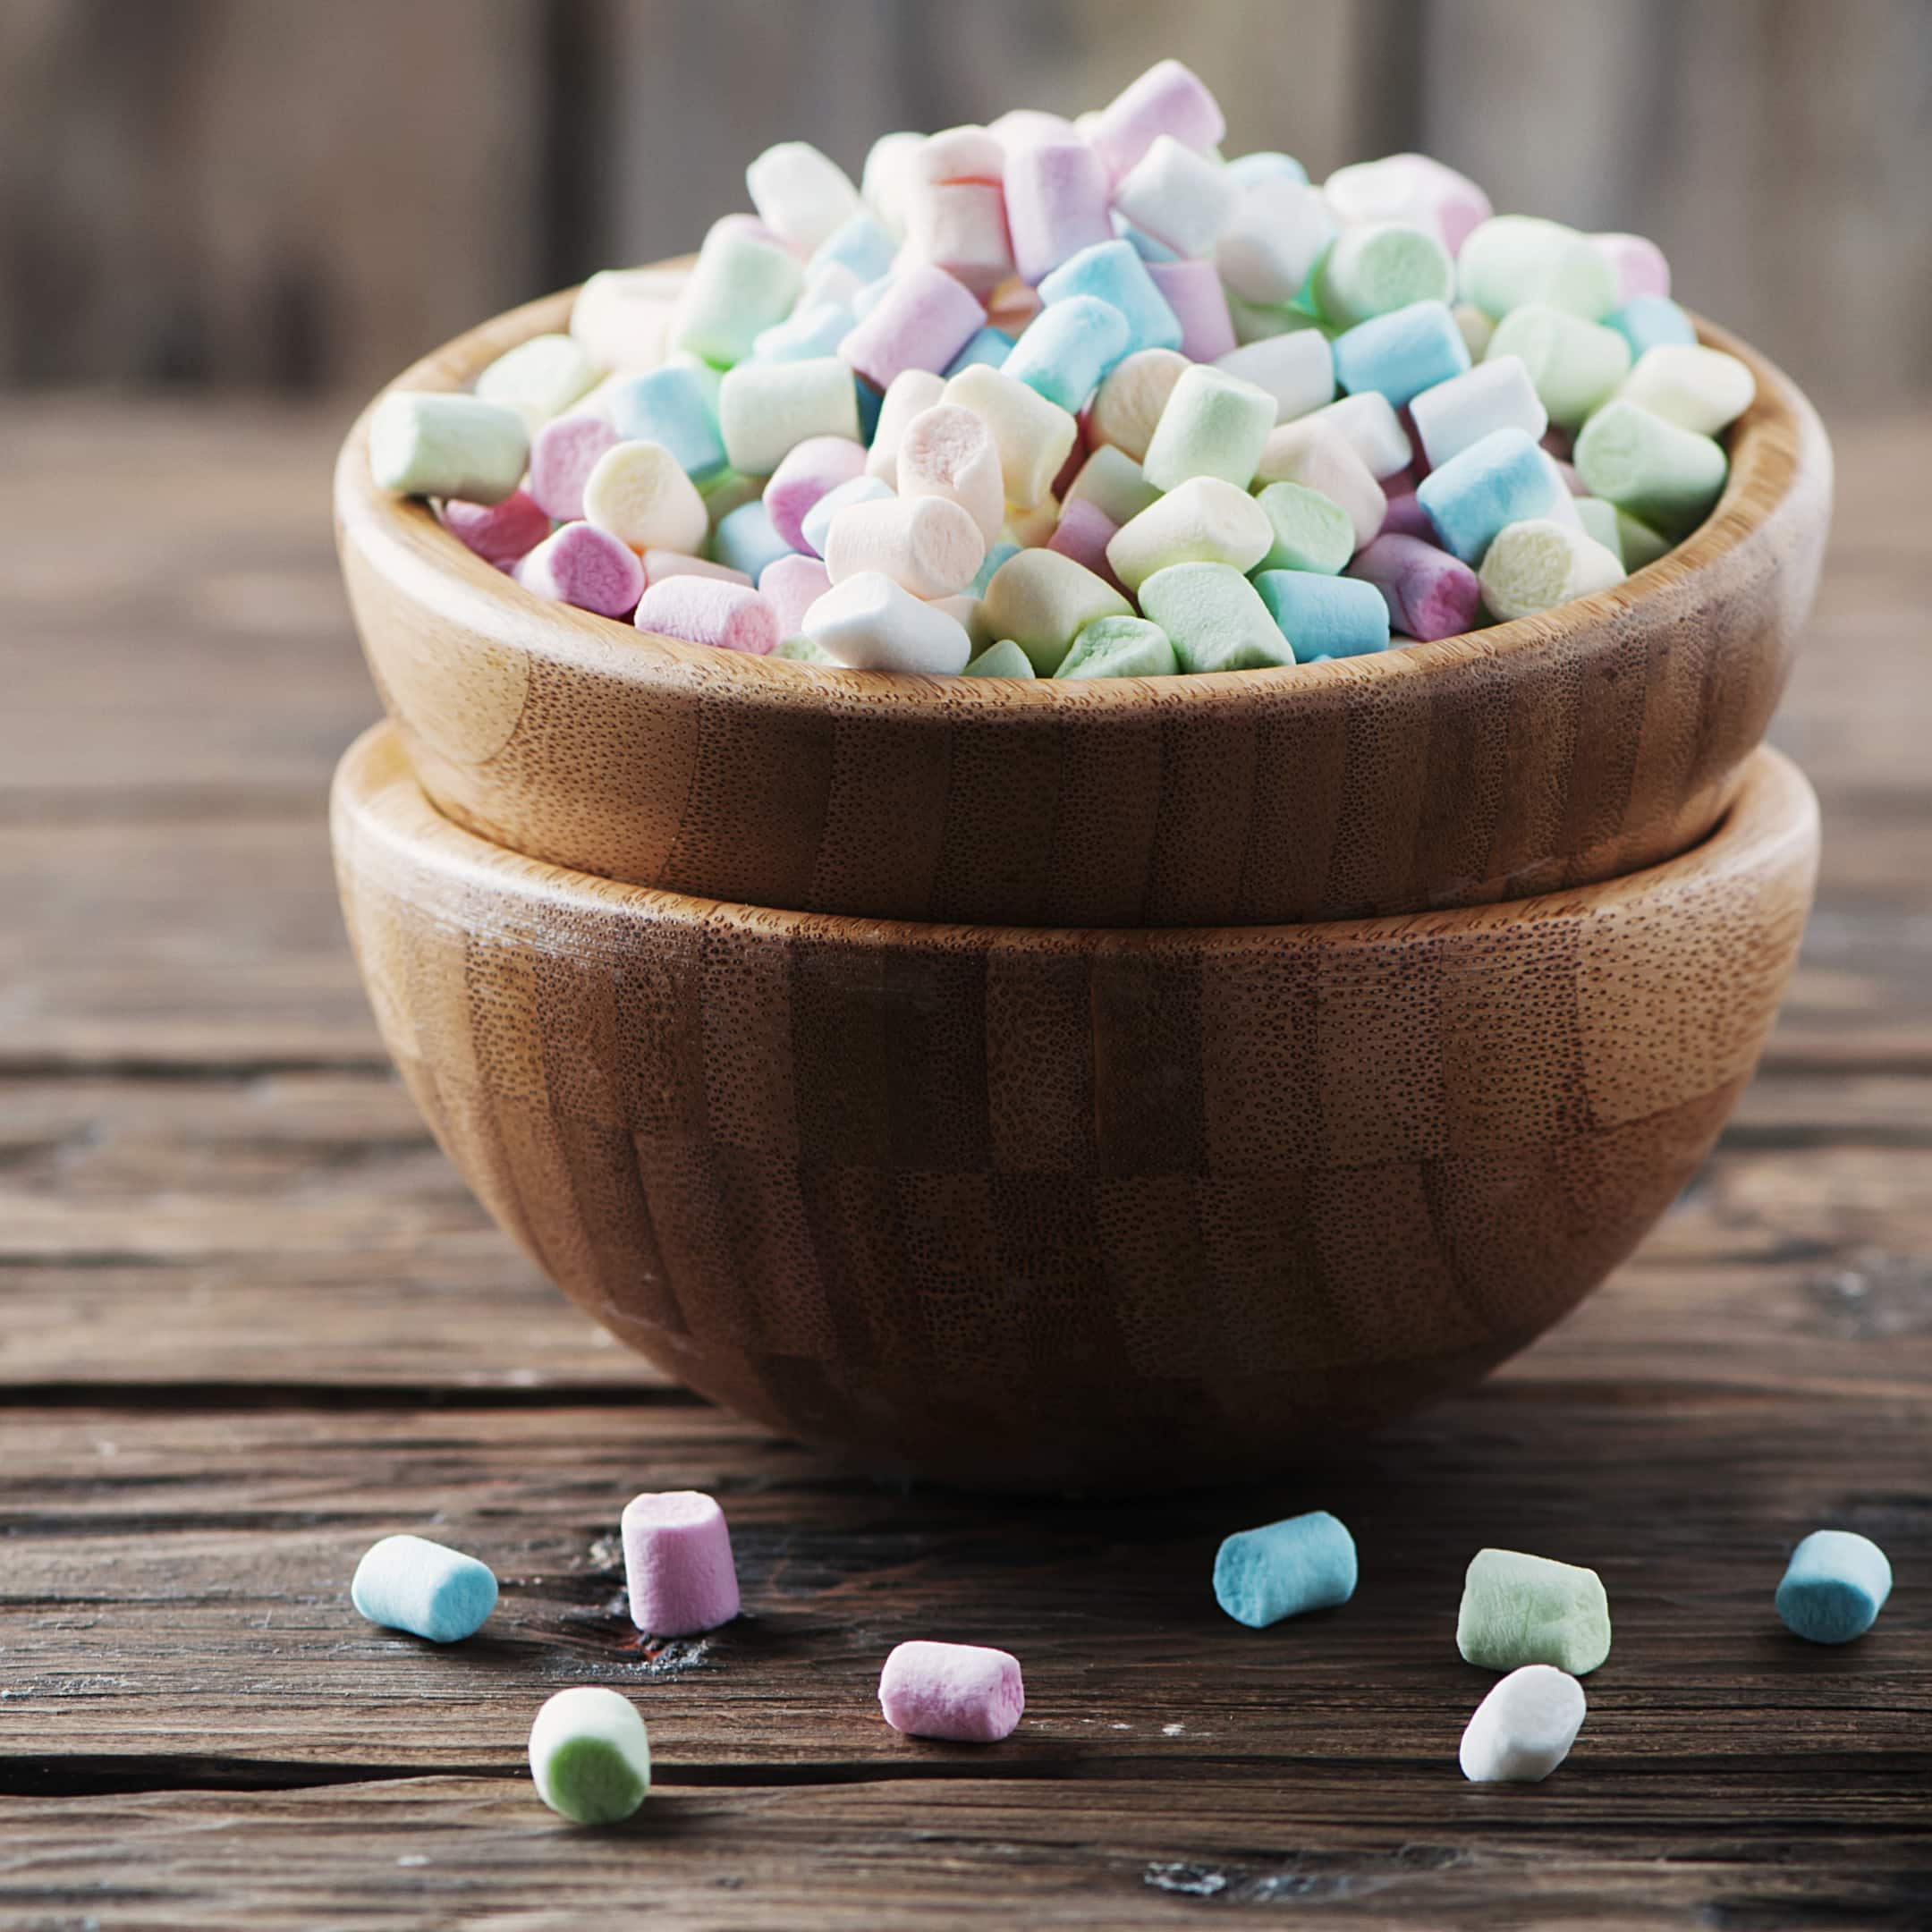 Colored marshmallow in the wooden bowl